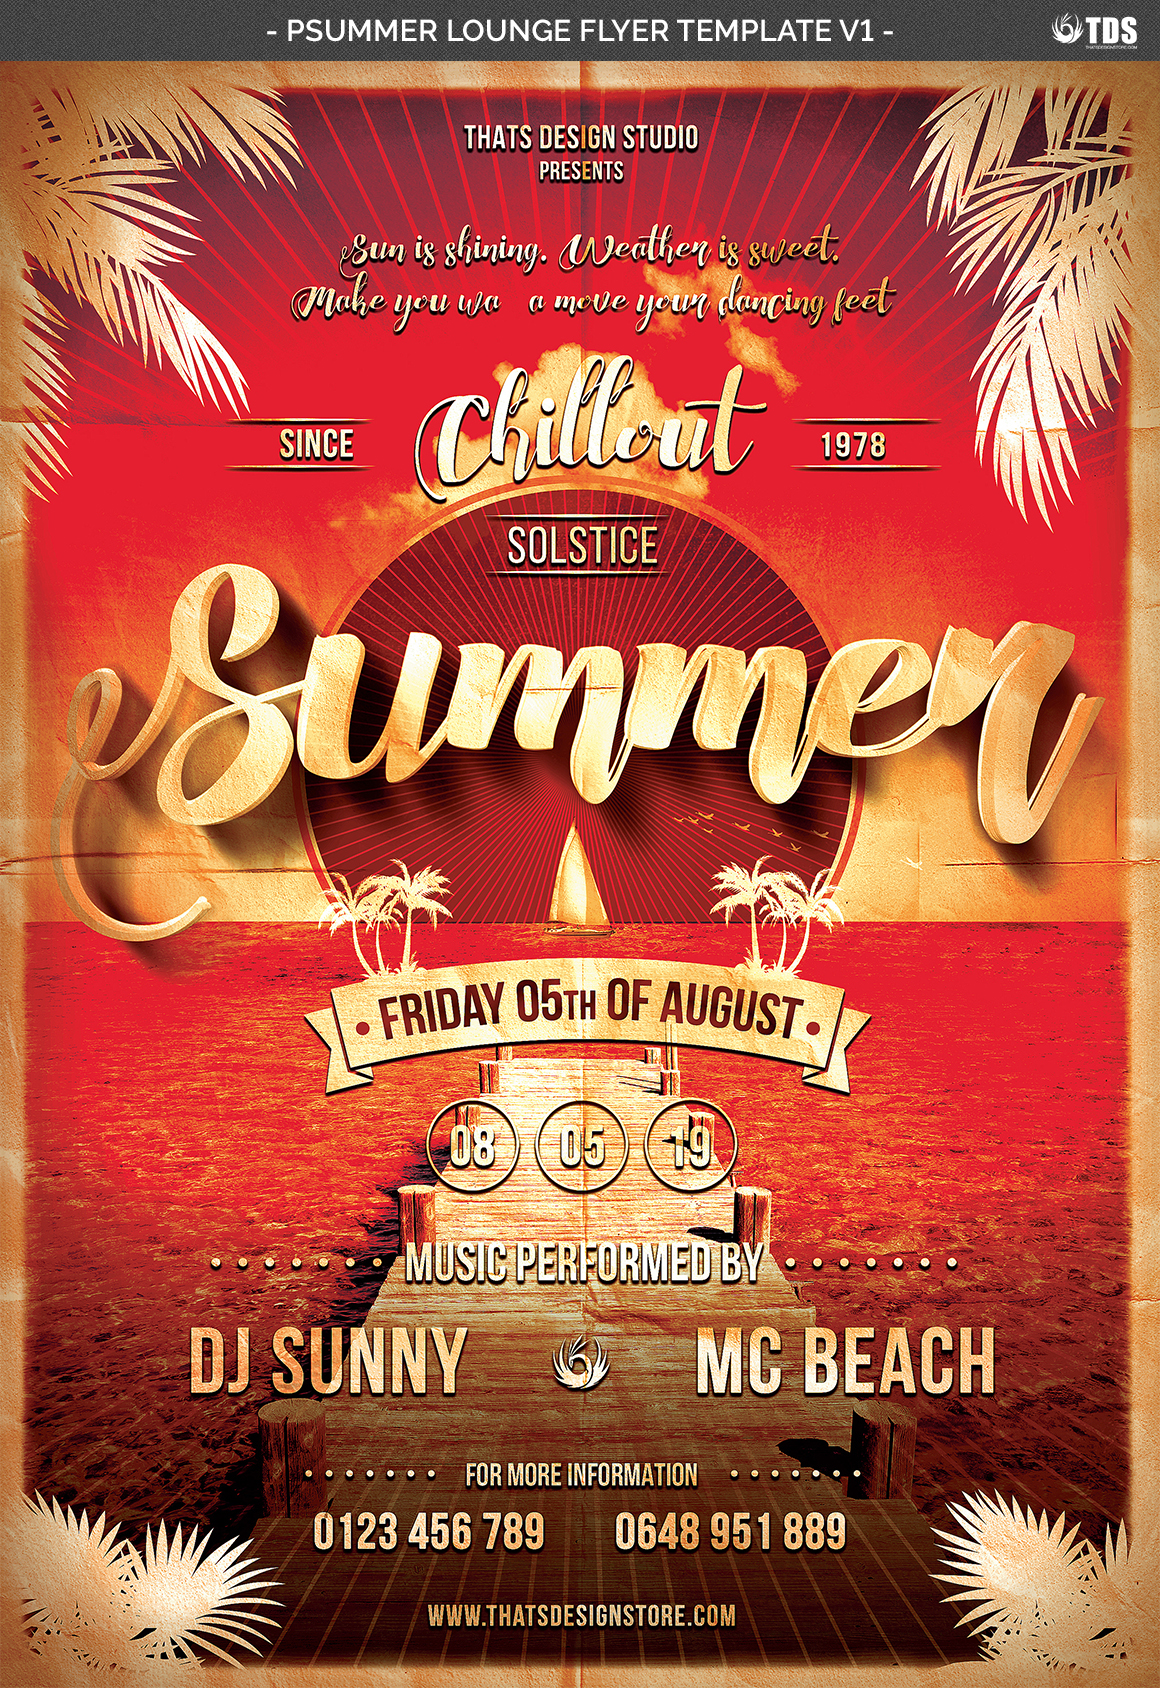 Summer Lounge Flyer Template V1 example image 4